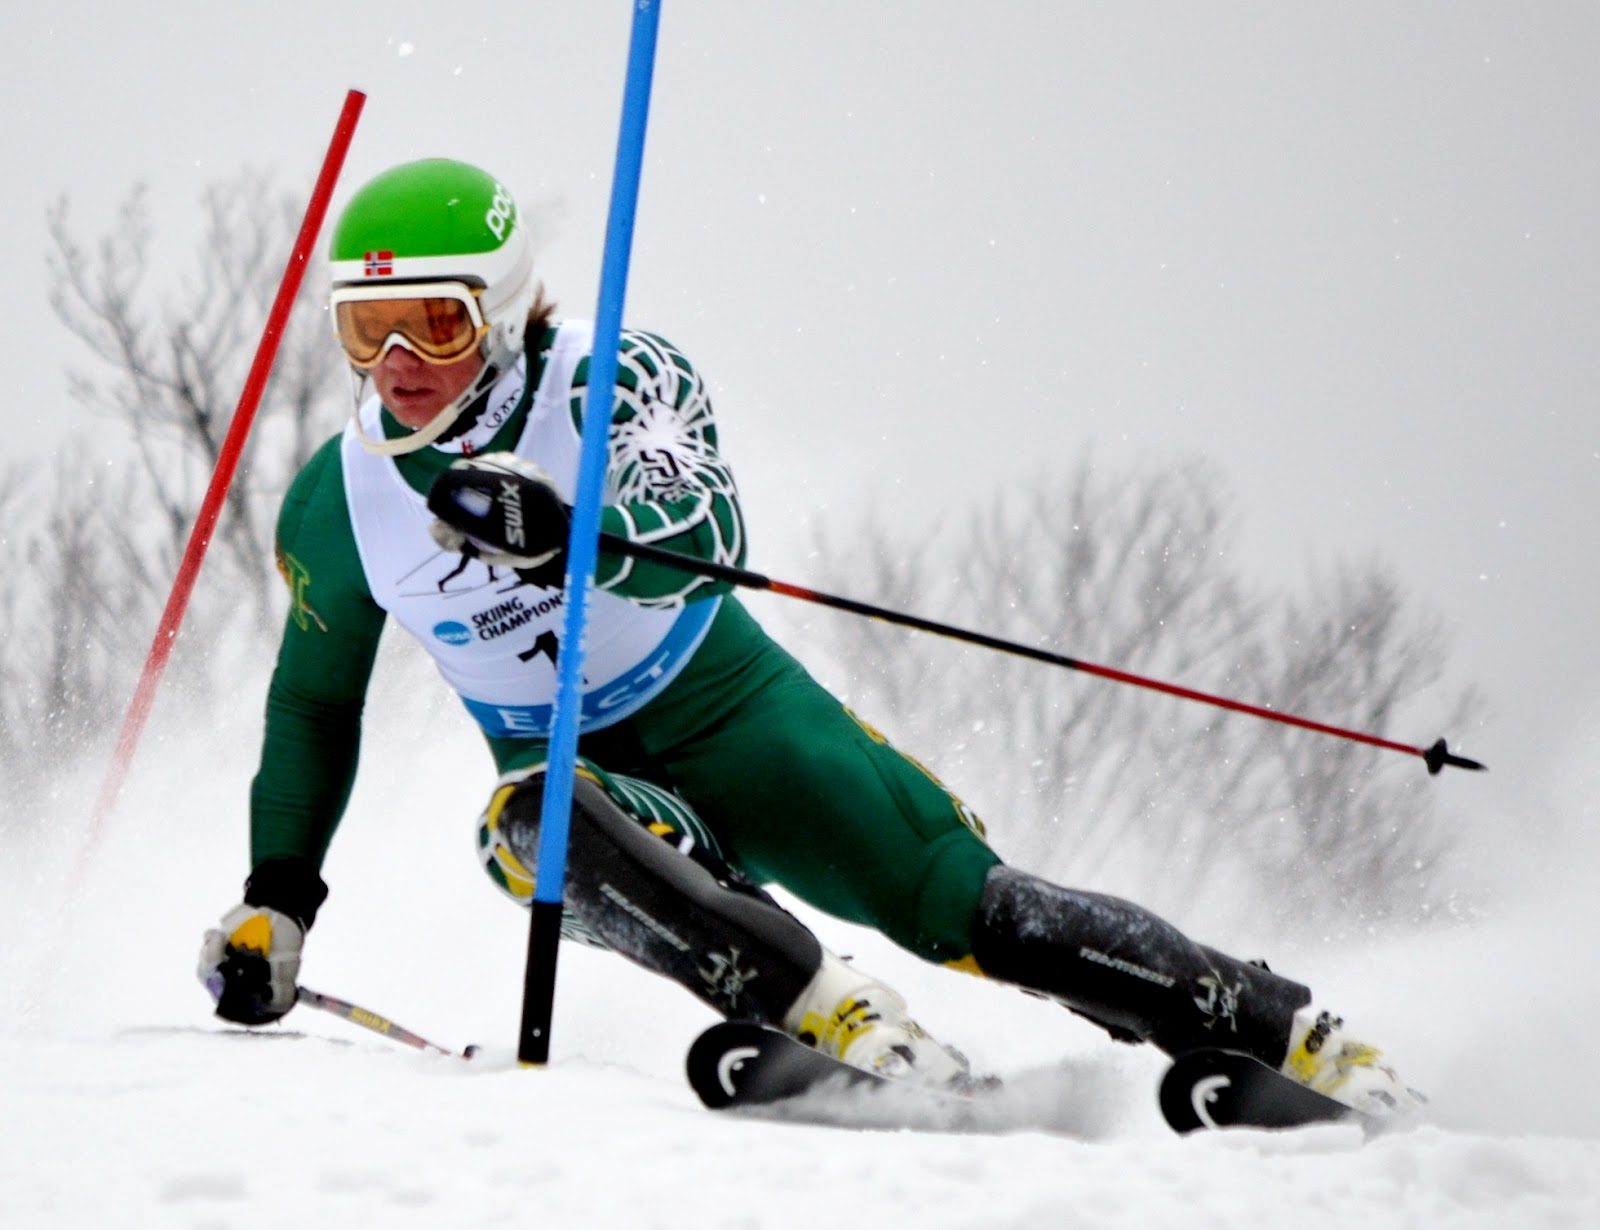 Alpine ski resorts plagued by lack of snow - Vermont S Jonathan Nordbotten Takes The Slalom Win